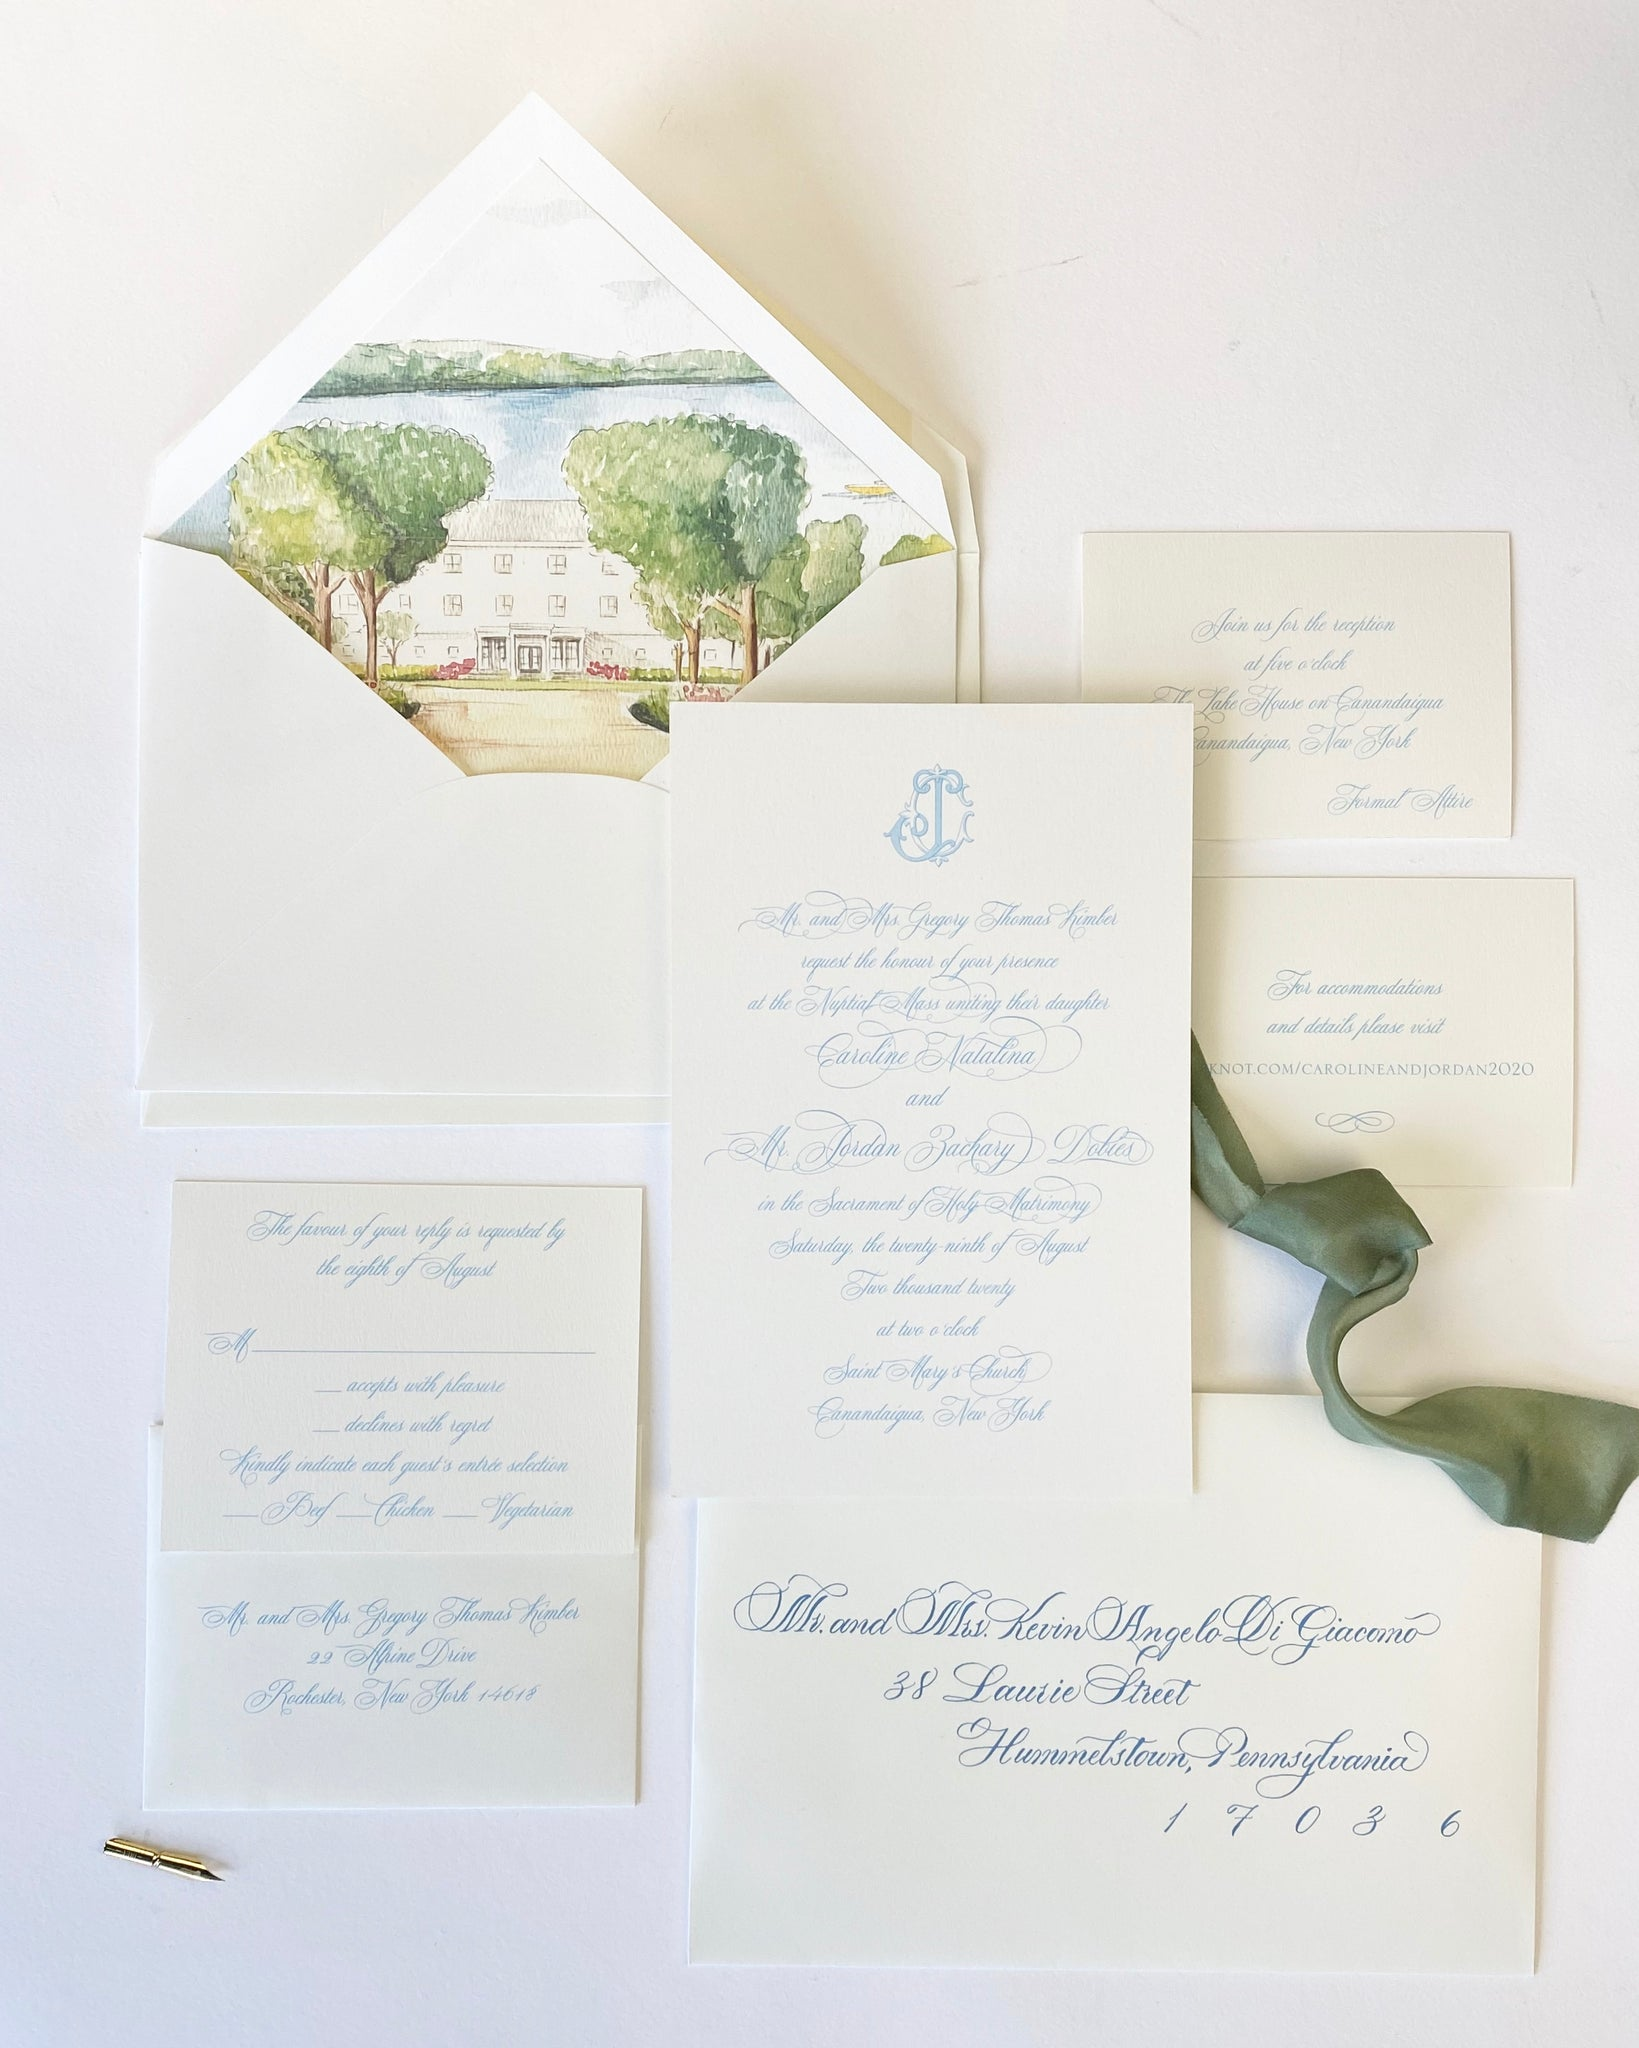 Kimber Wedding Invitation - Deposit Listing